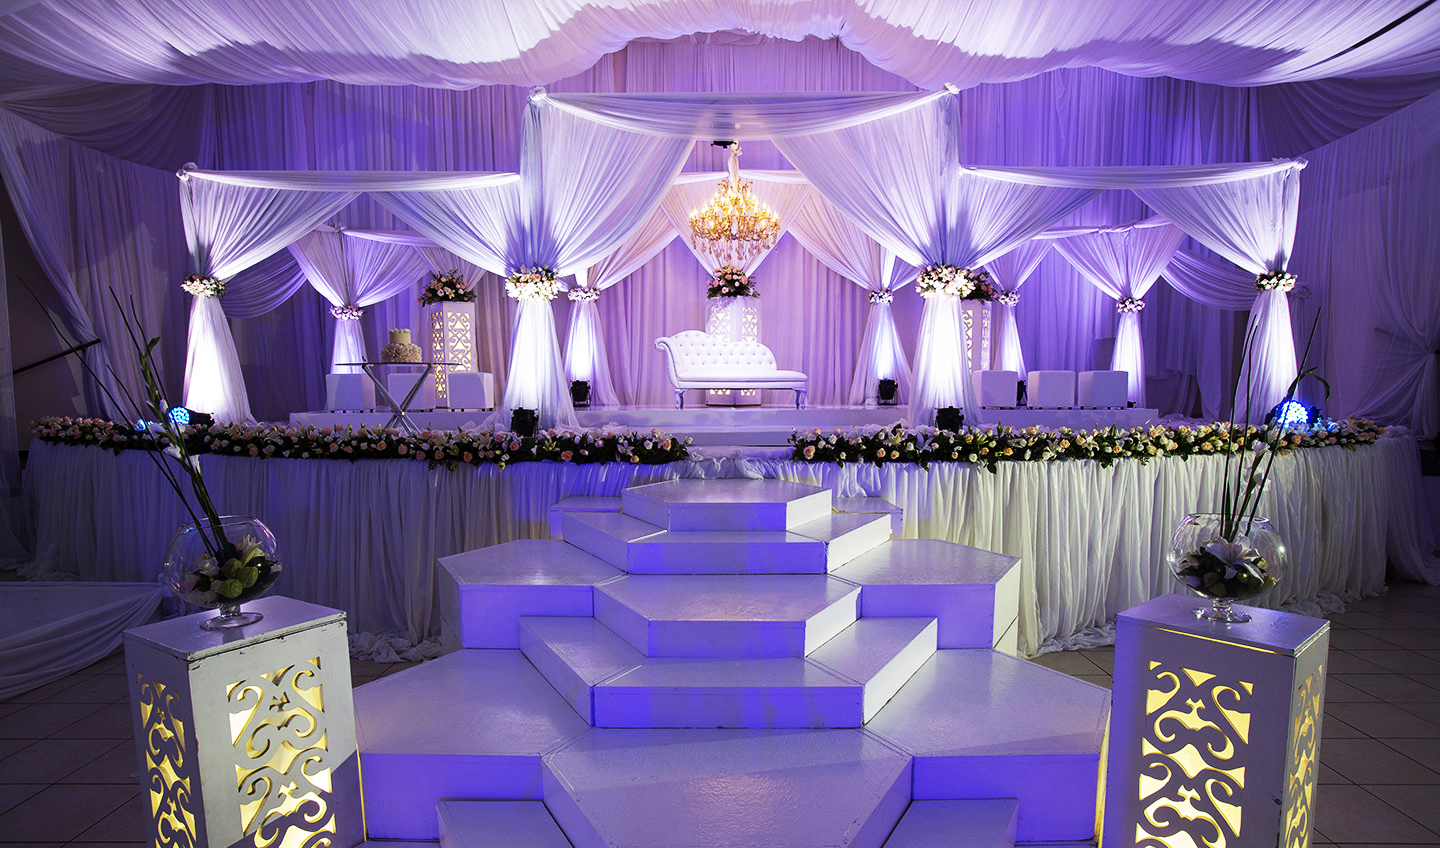 Designer weddings koogan pillay wedding decor durban for Decorate pictures